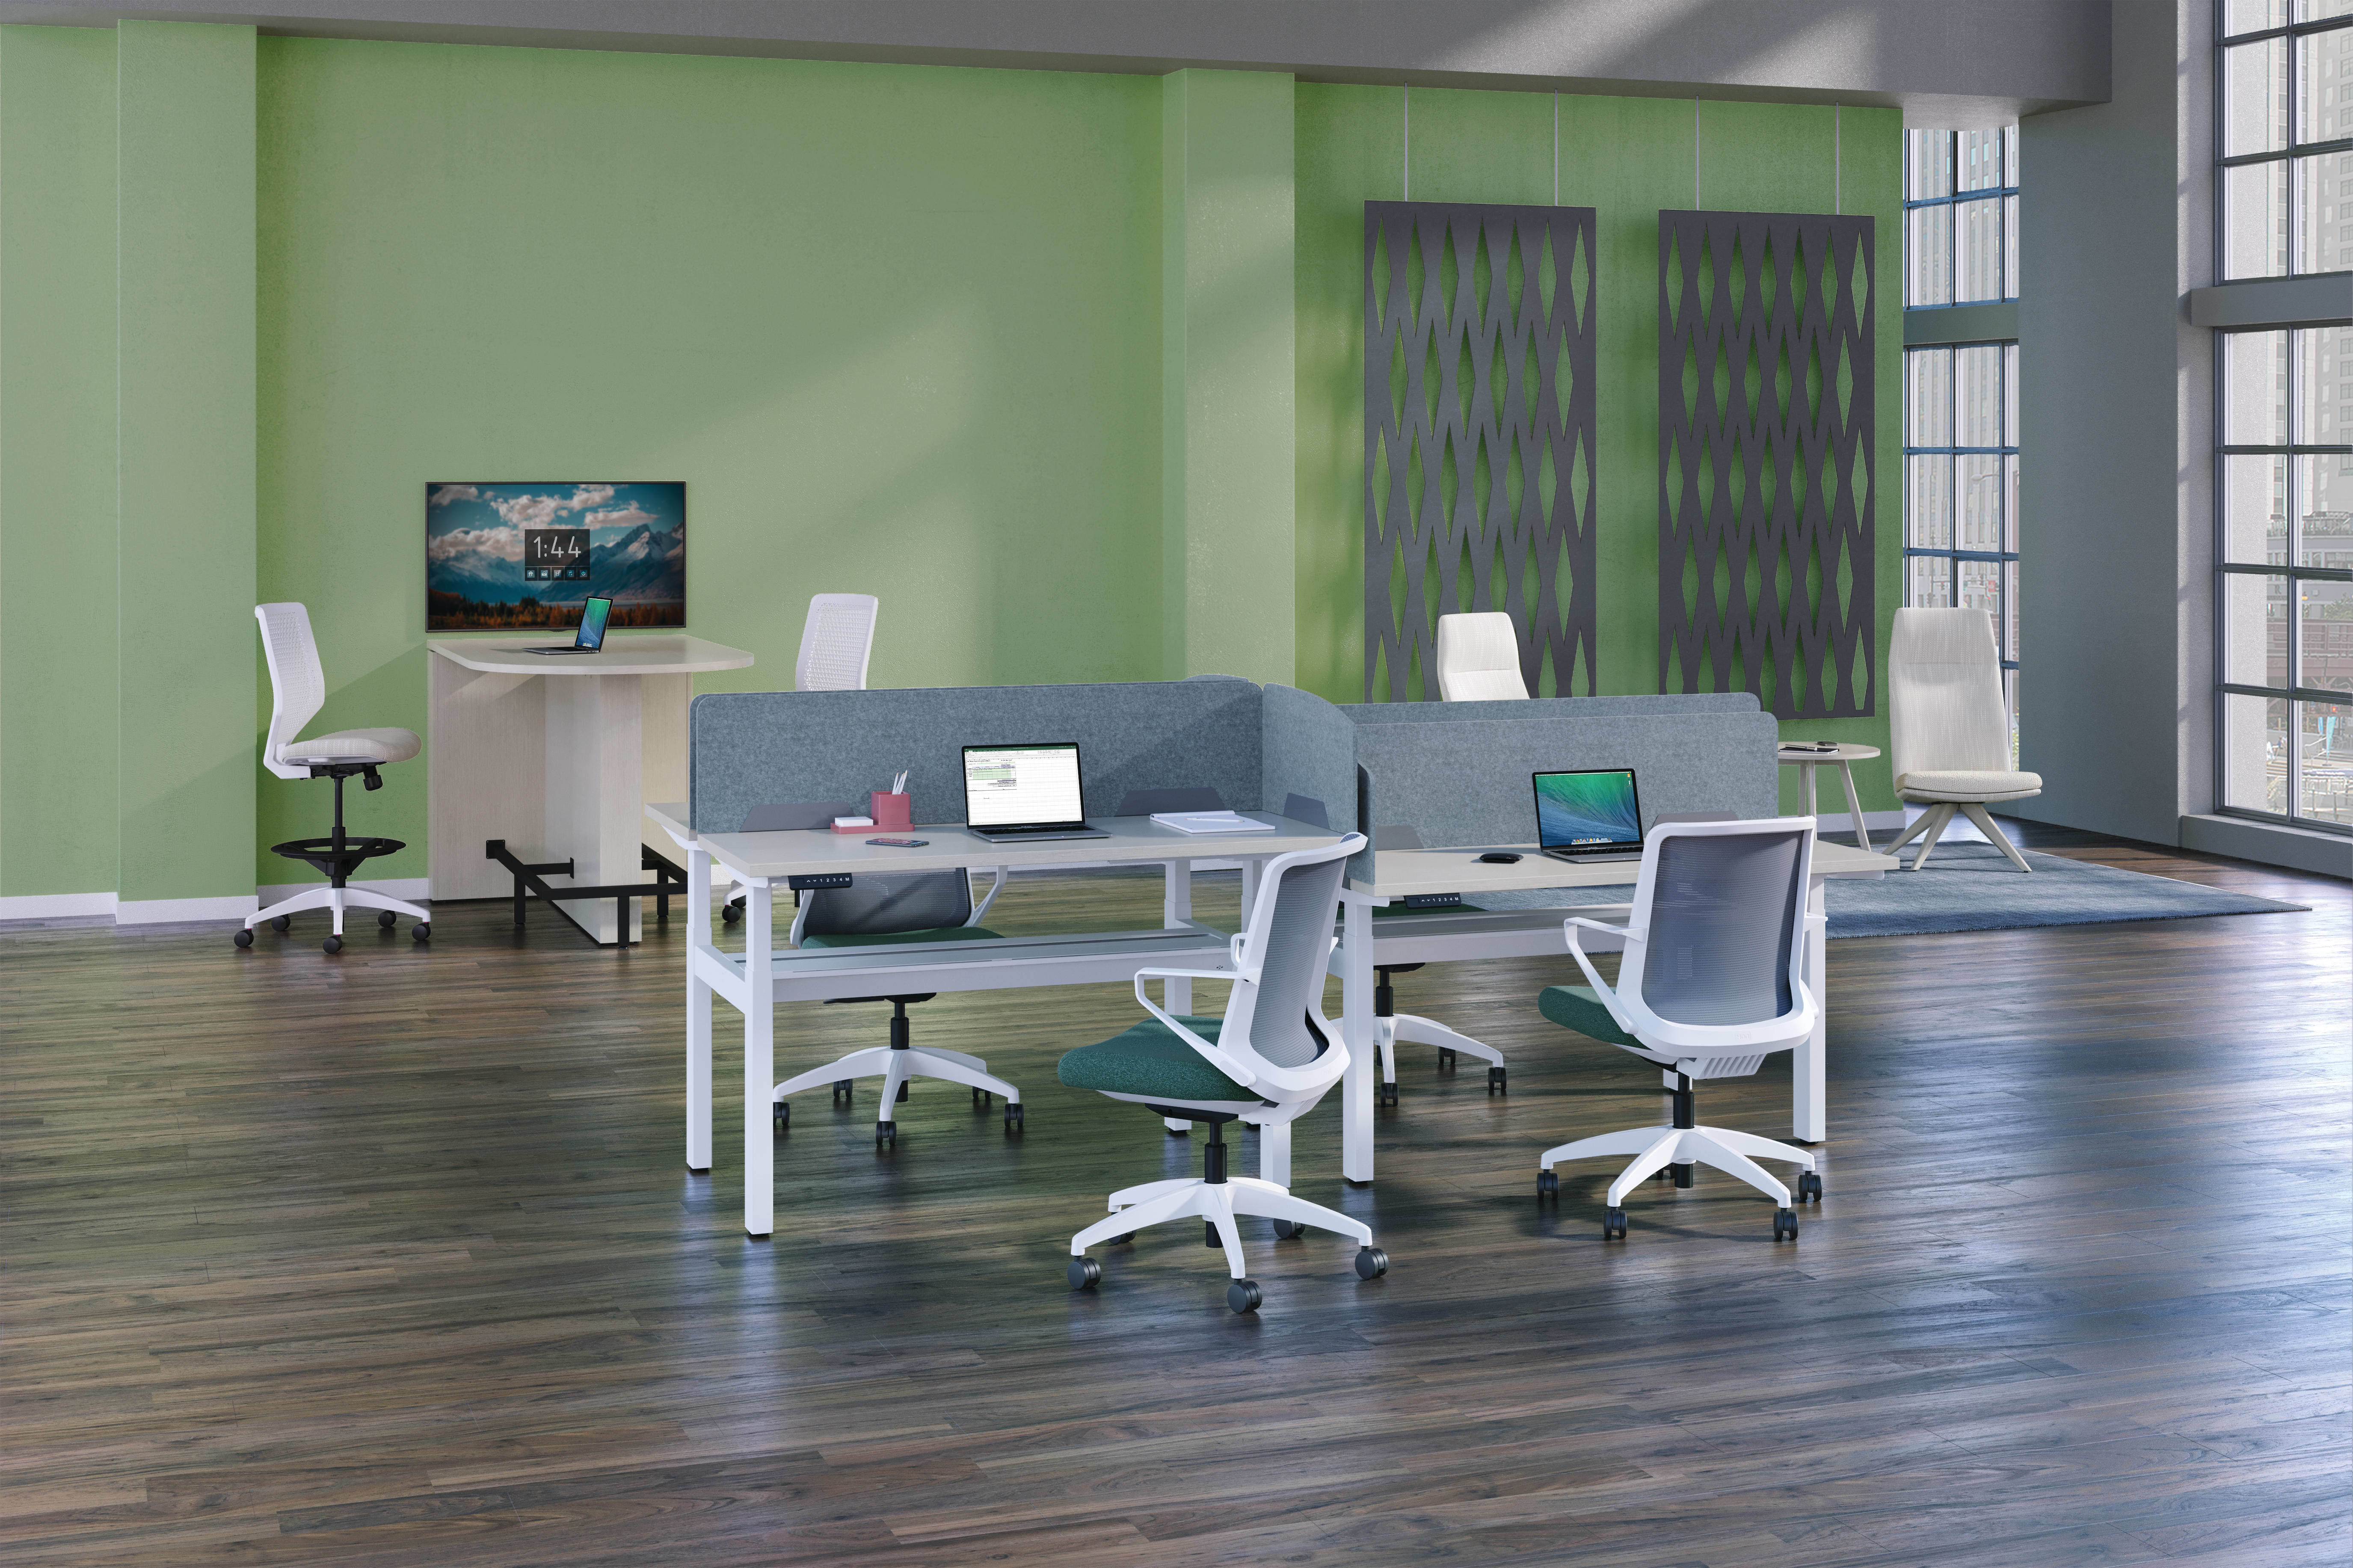 Universal PET Screens, Cliq seating, Empower workstations, Preside Media Table, Solve Stool and Mav seating.